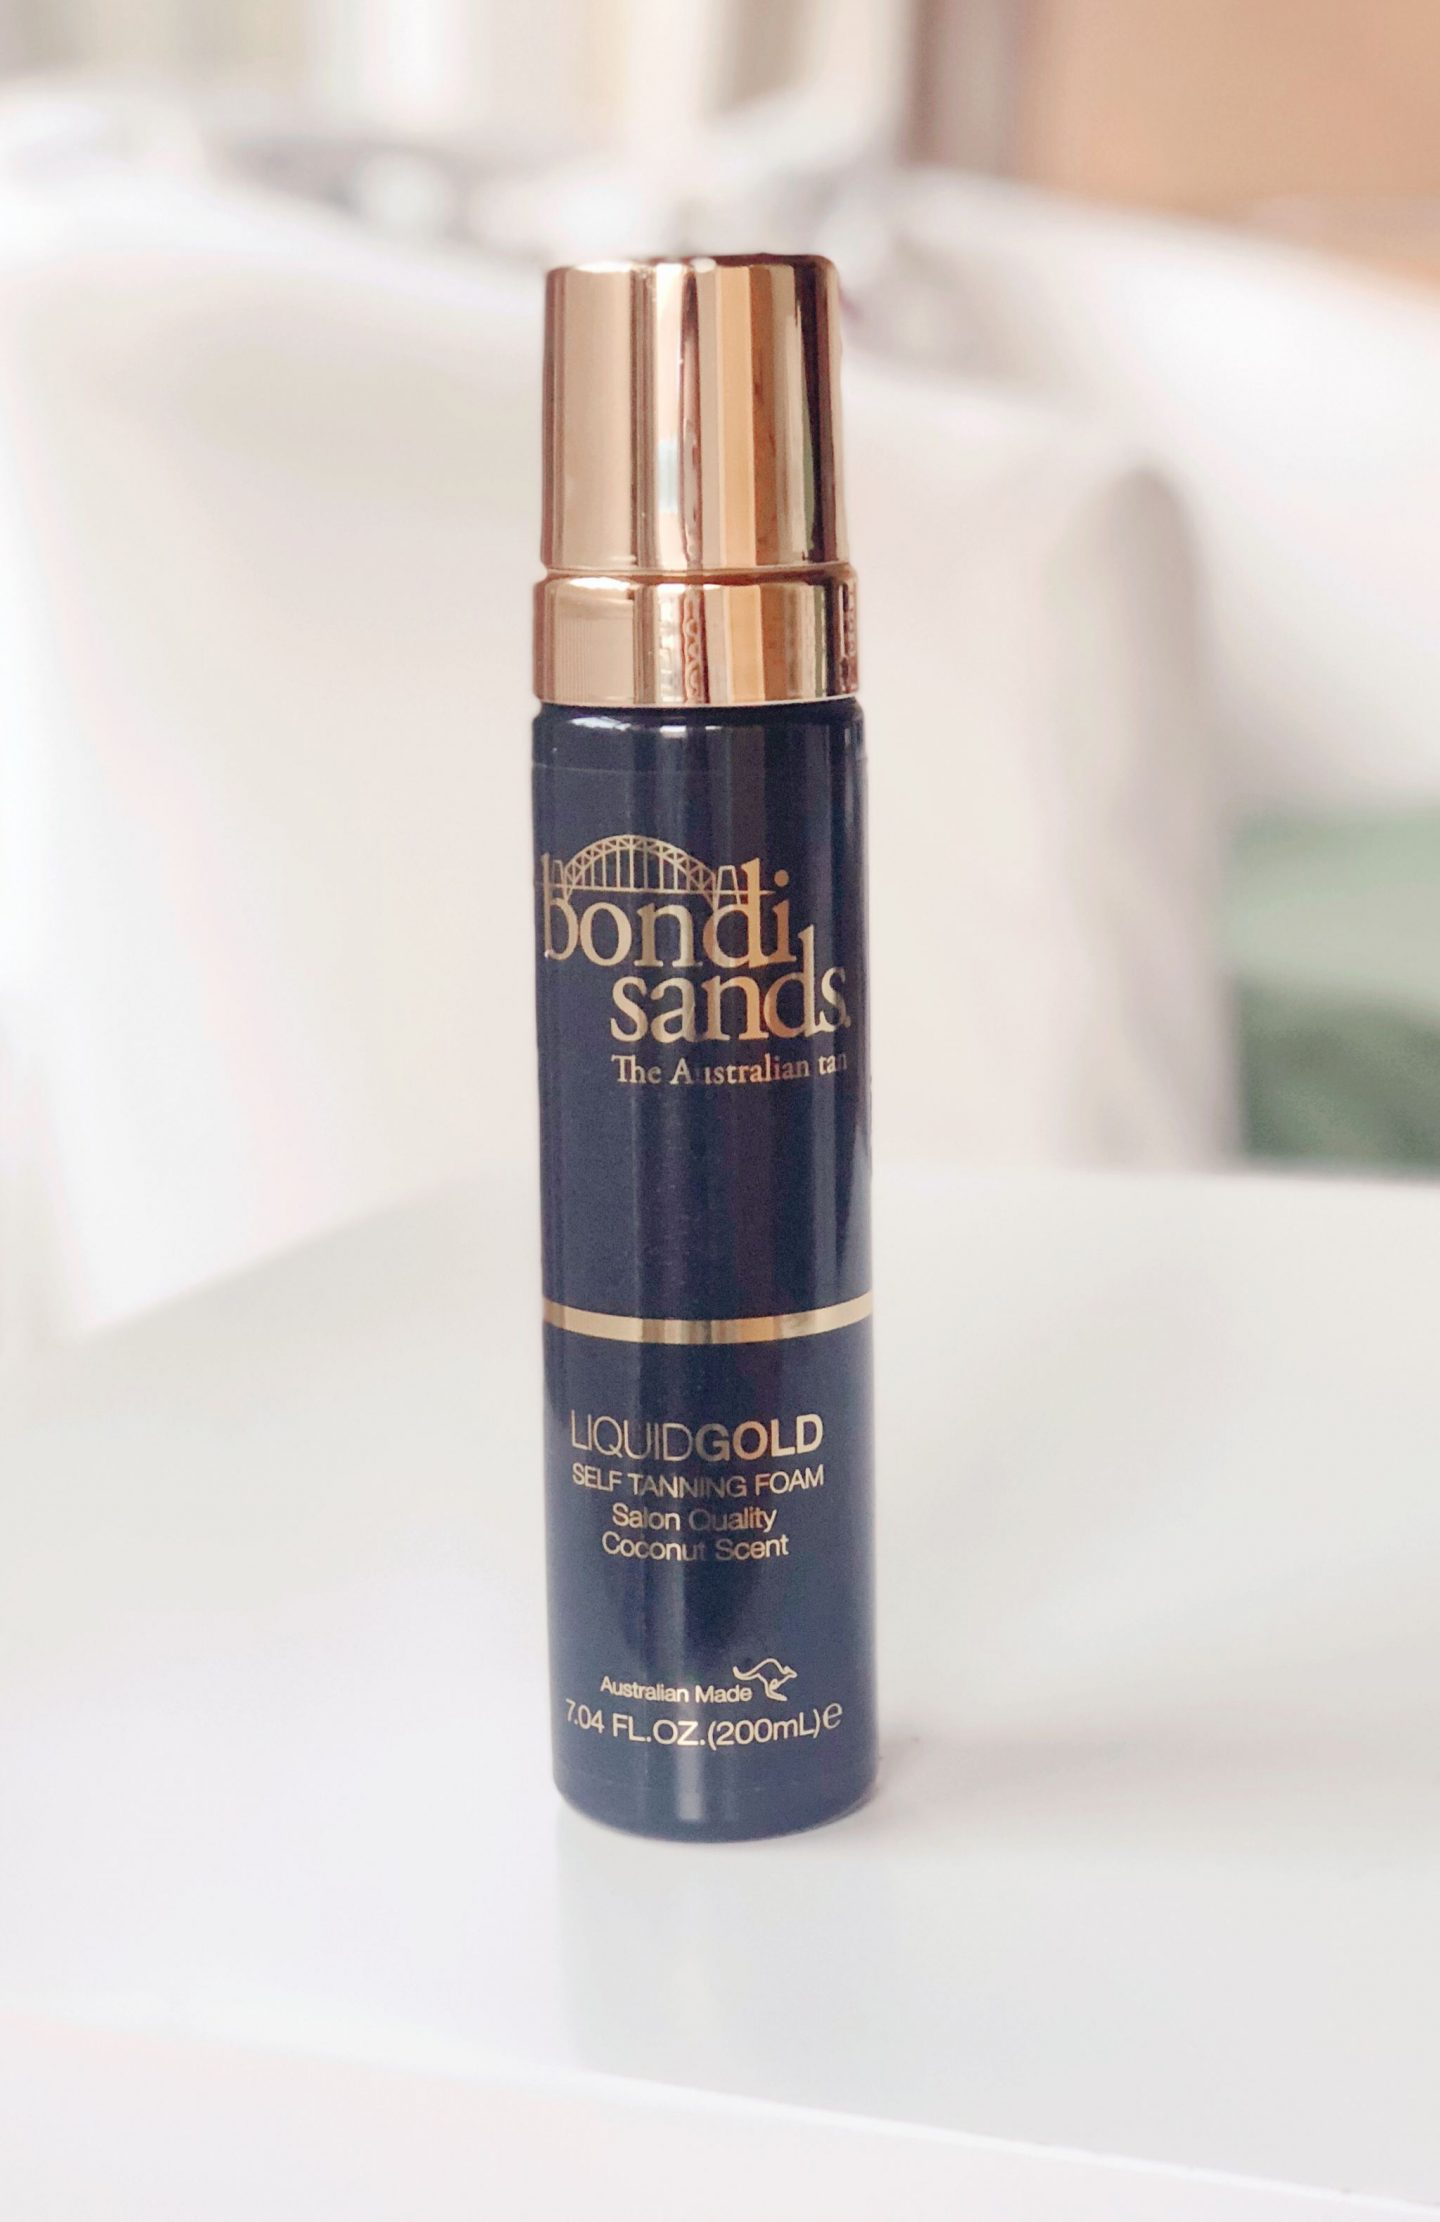 Bondi Sands Liquid Gold Self Tanning Fam